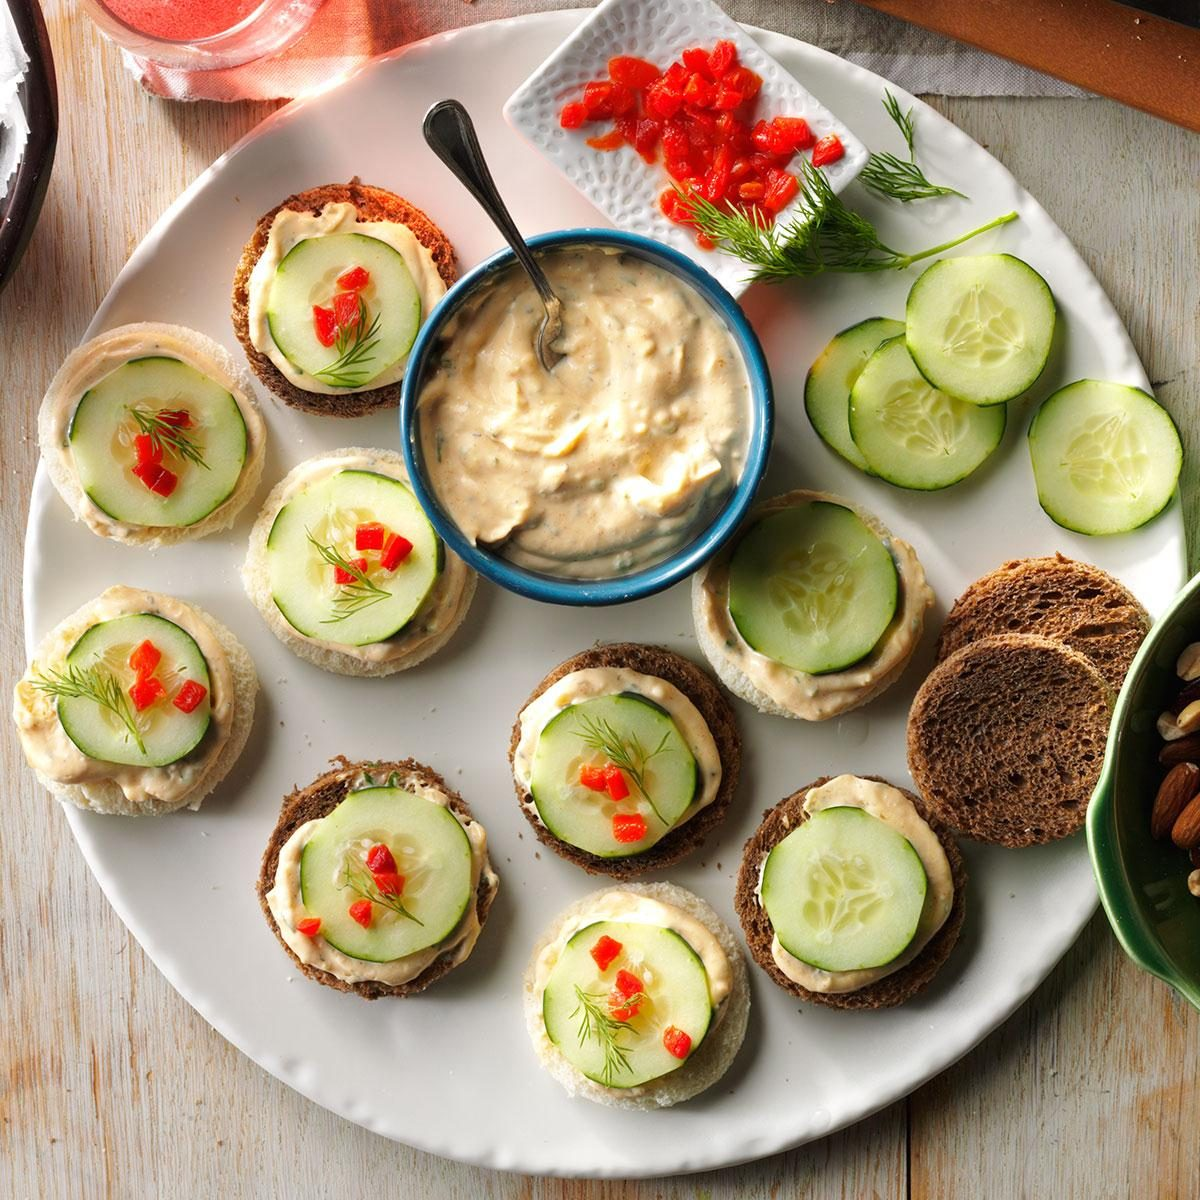 Cucumber canapes recipe taste of home for Canape menu ideas